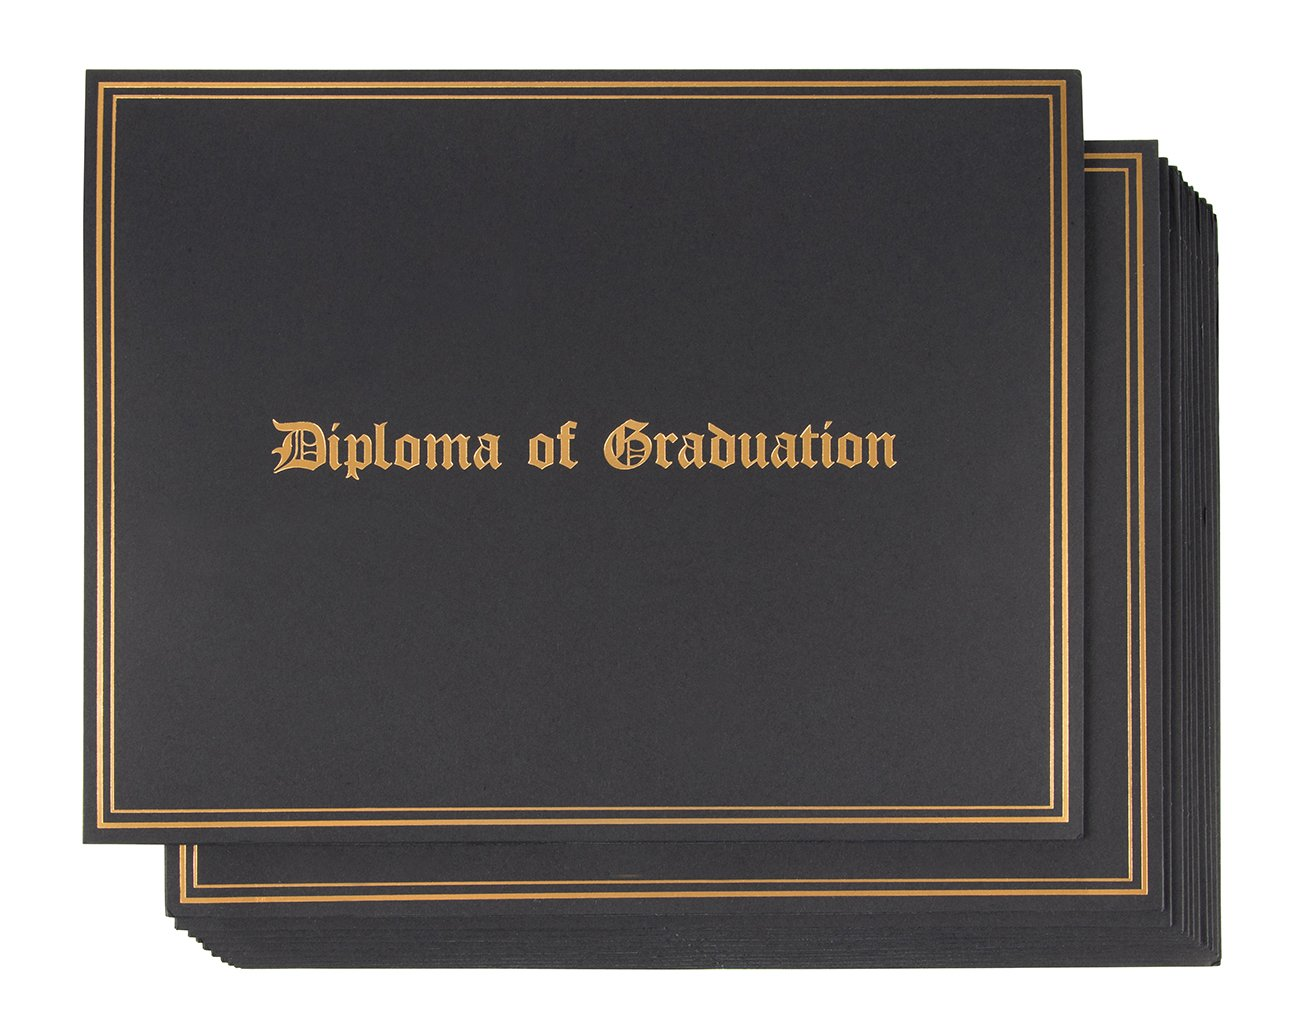 Certificate Holder - 12-Pack Diploma Covers for Graduation Ceremony, Document Holder for Letter-Sized Award Certificates, Black with Gold Foil Designs, 11.2 x 8.7 inches